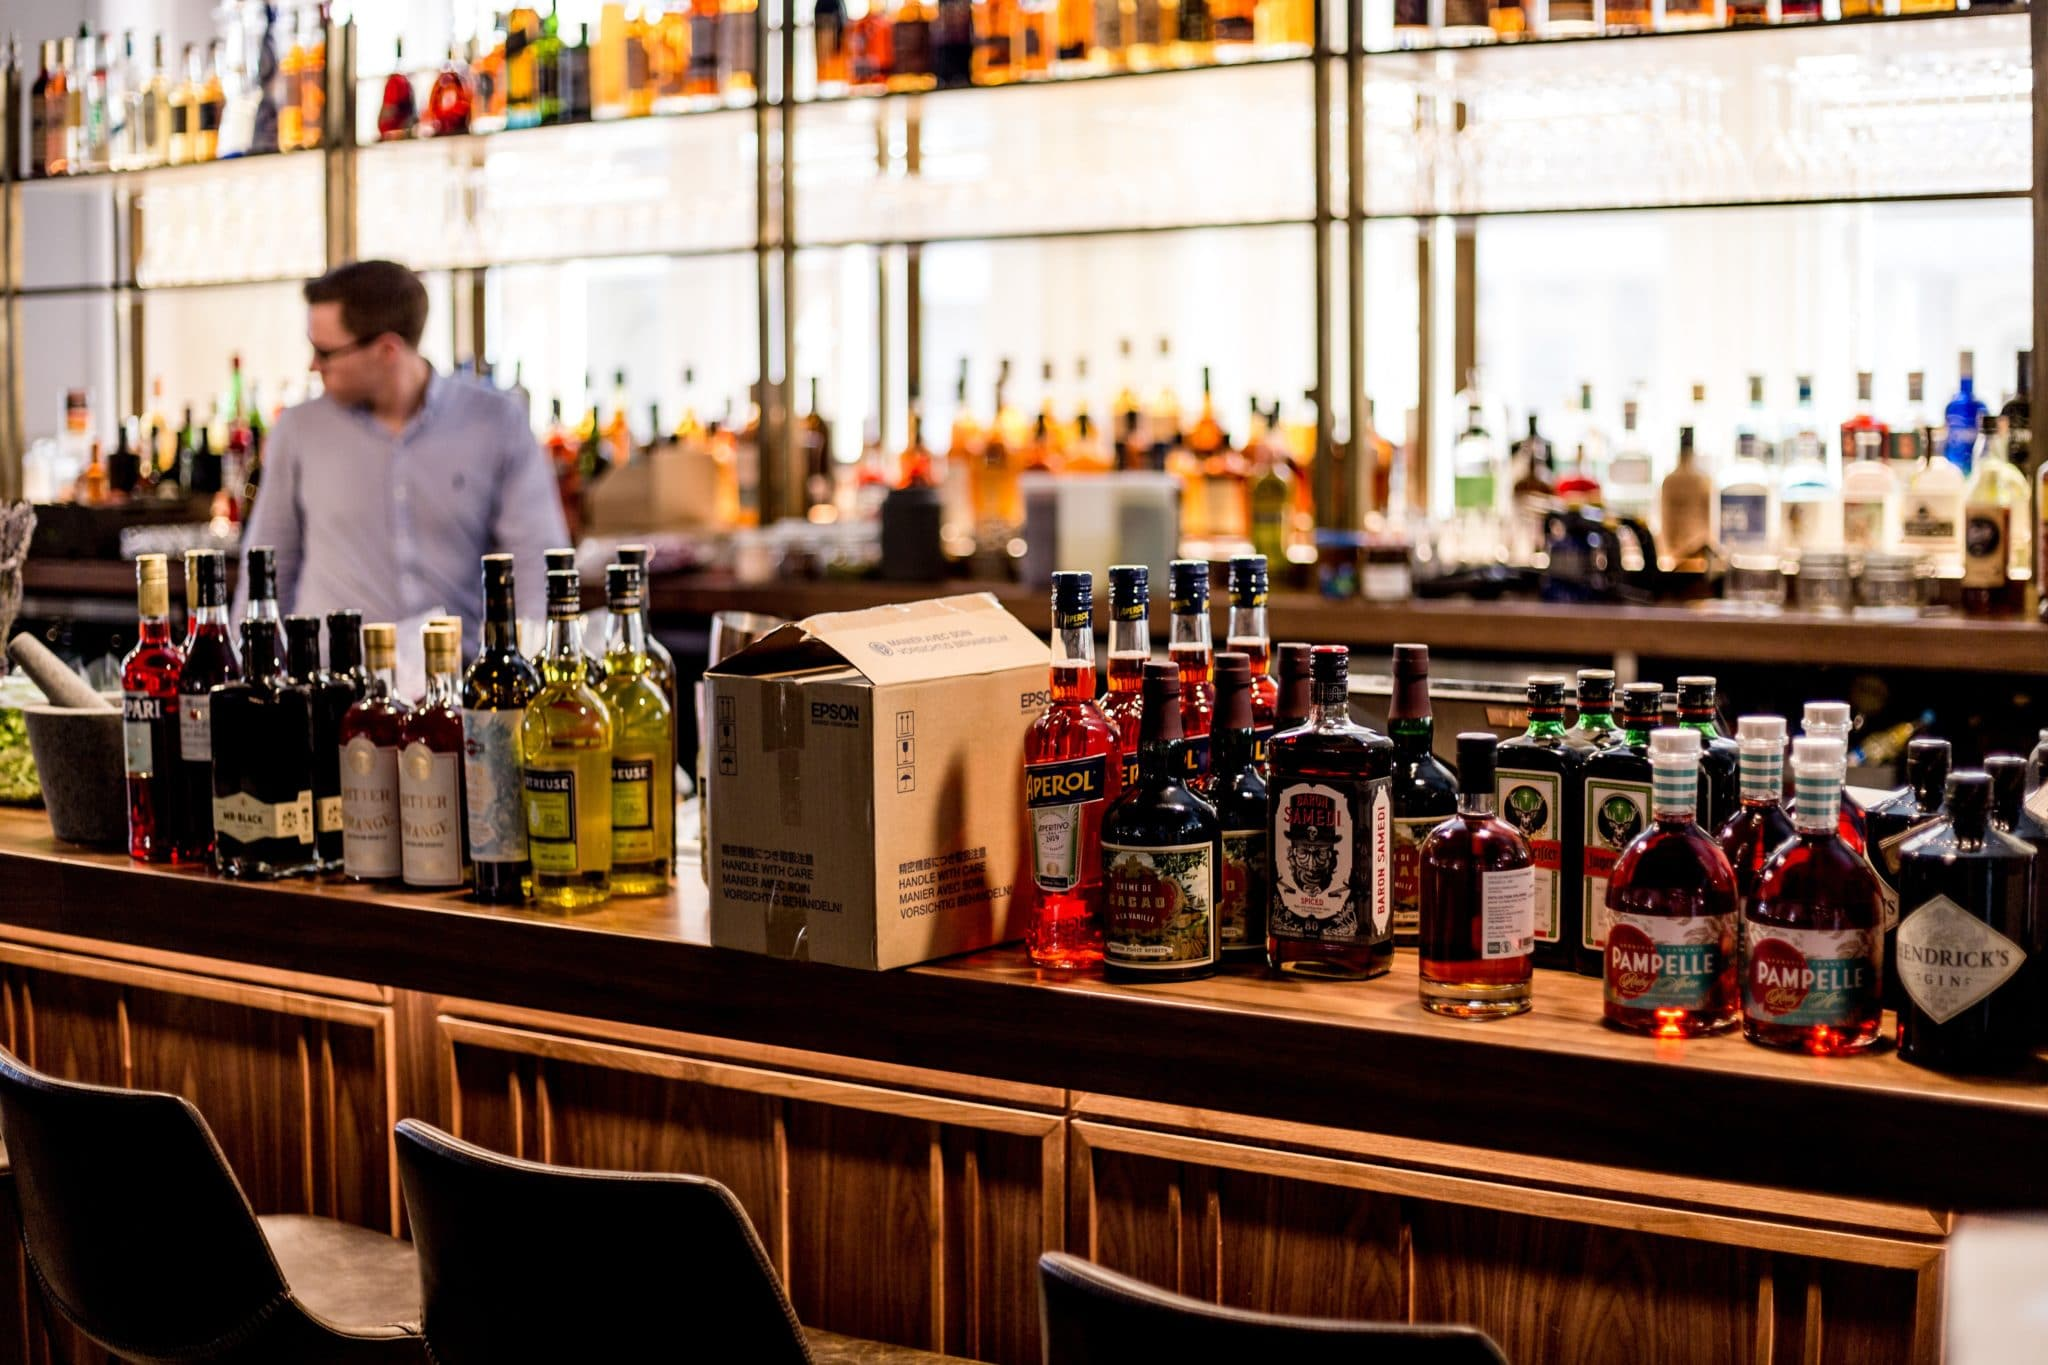 inventory of hard liquor bottles on a bar